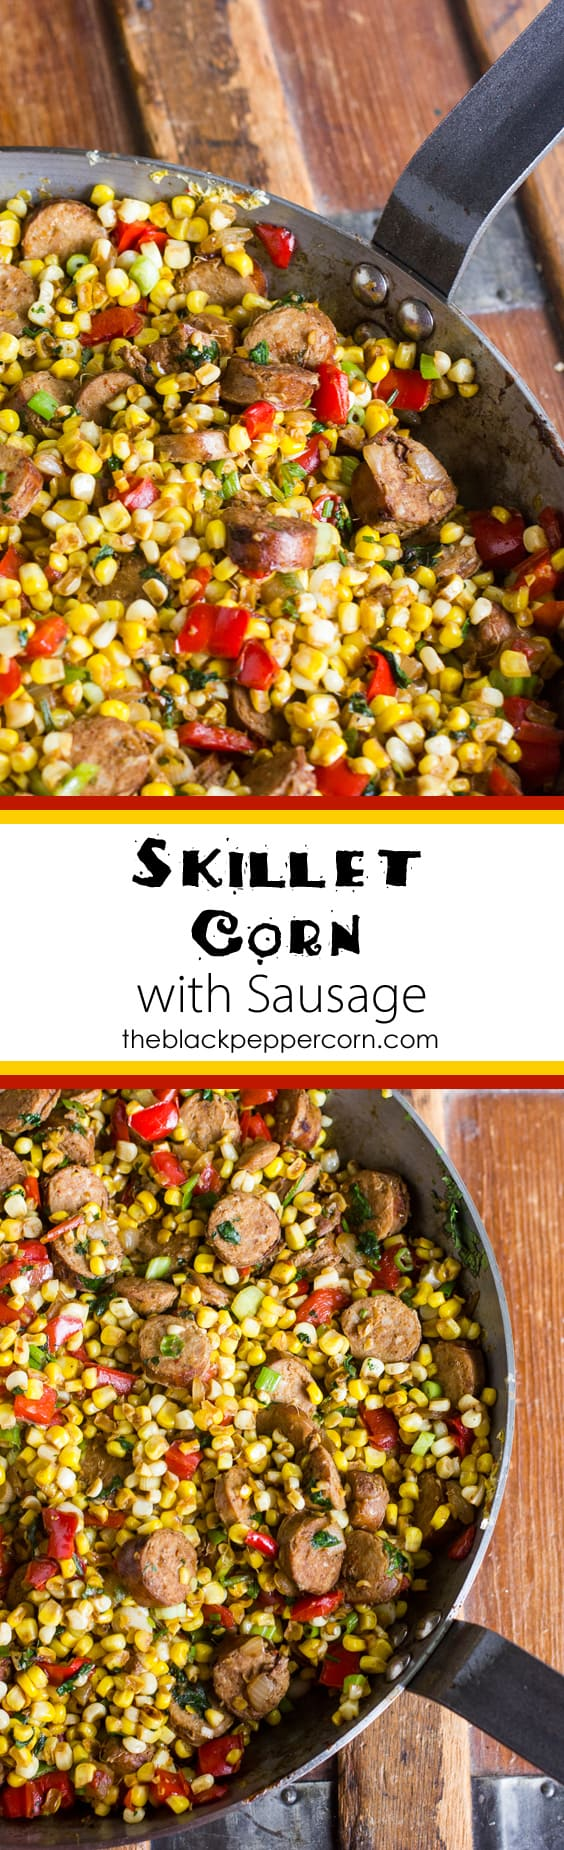 Fried corn cut off the cob and sausage make a delicious side dish. How to make instructions using a carbon steel or cast iron skillet